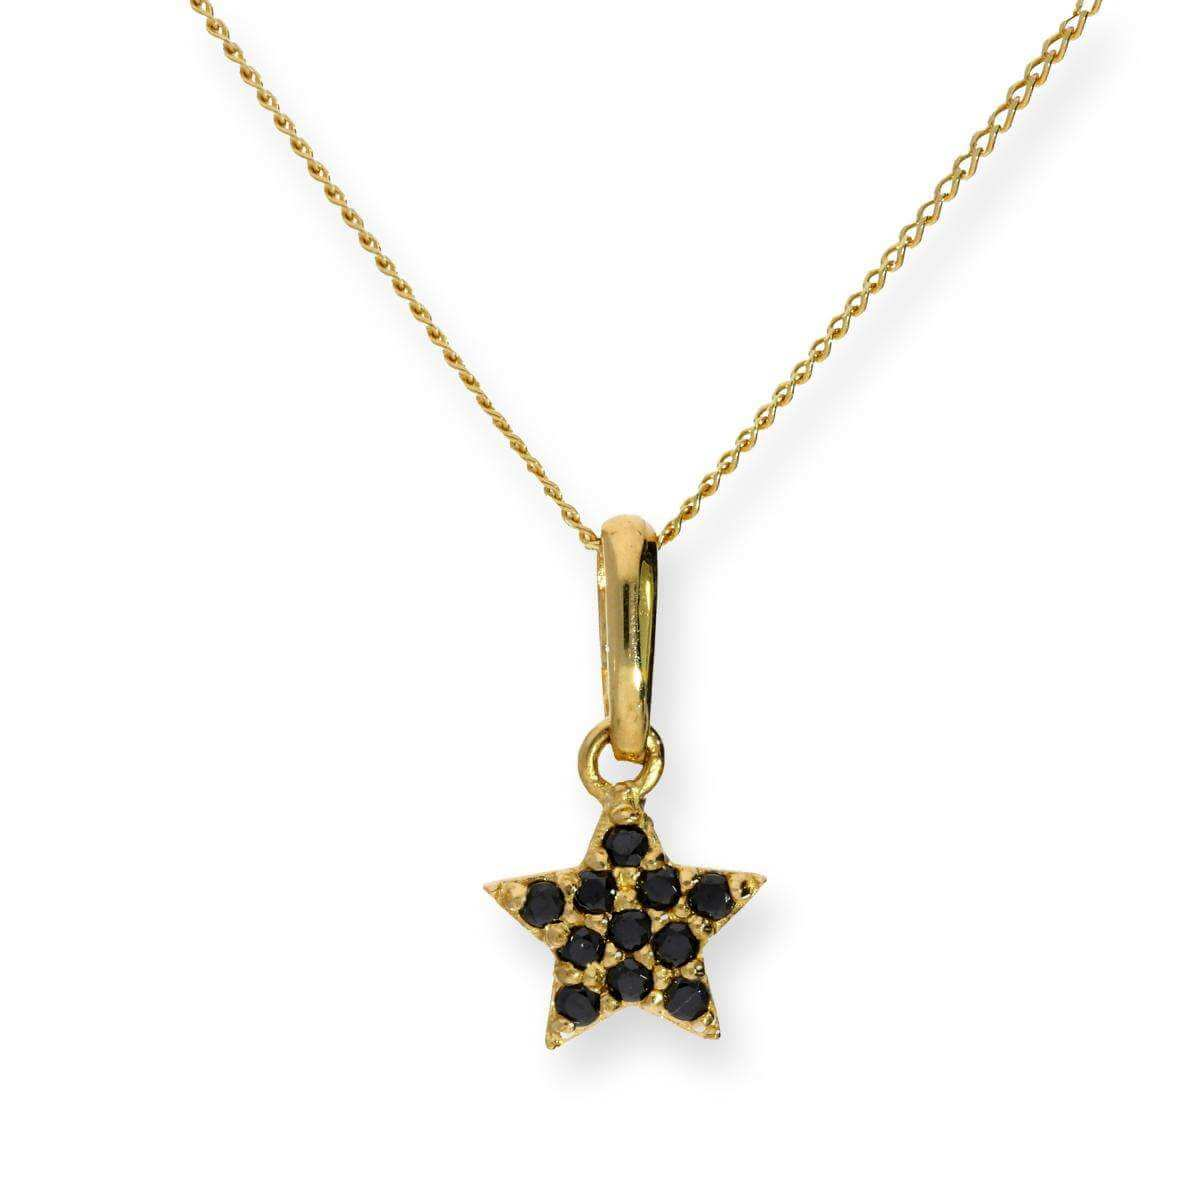 9ct Gold & Black CZ Crystal Star Pendant Necklace 16 - 20 Inches